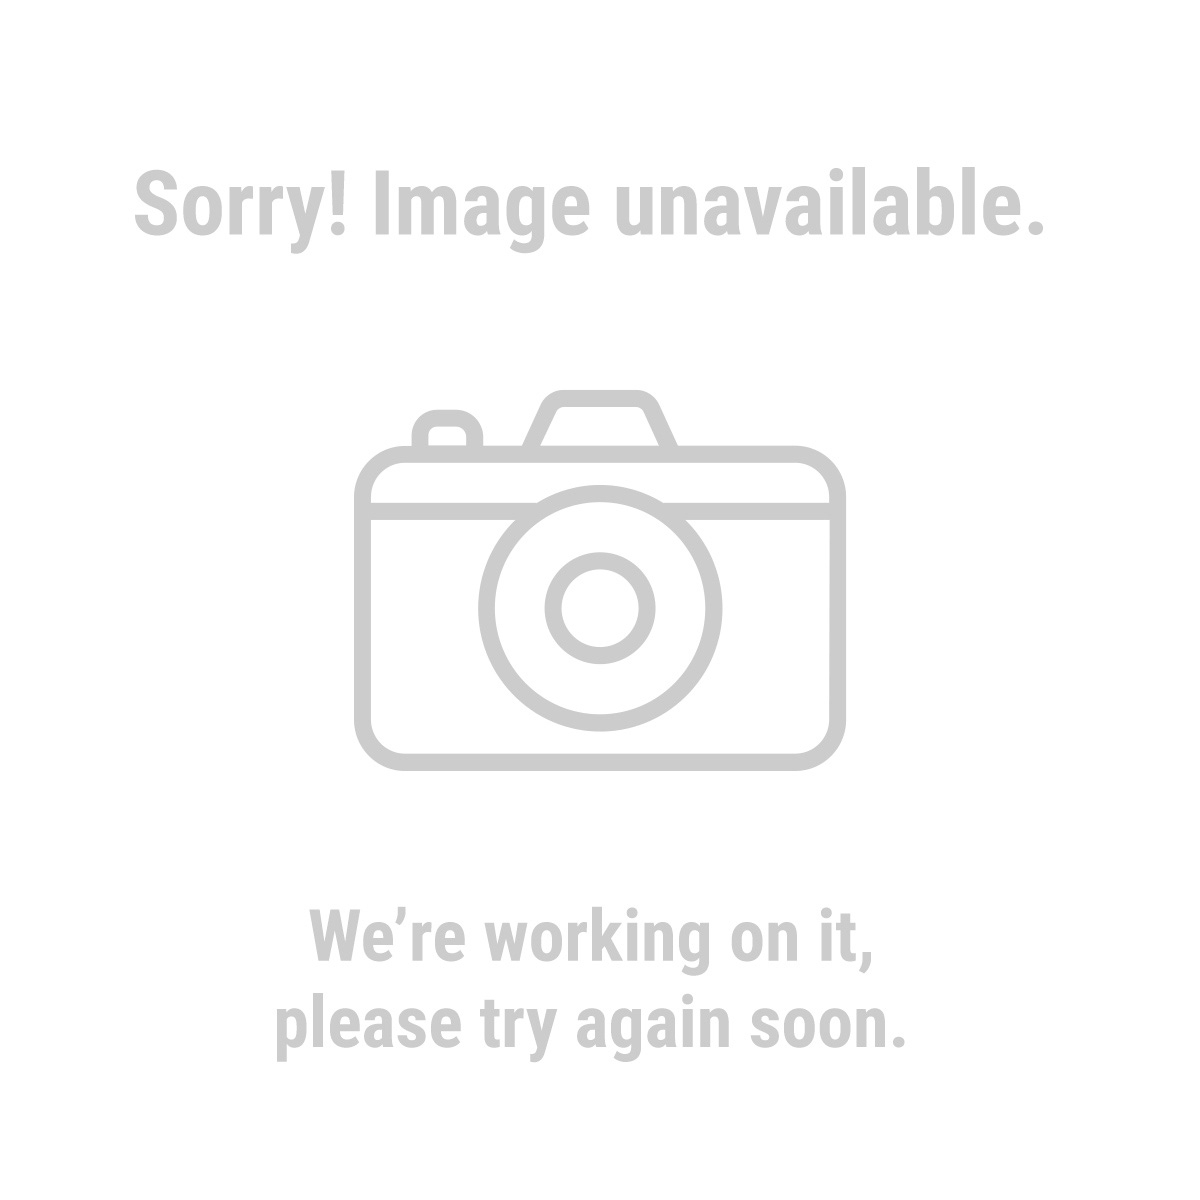 Pittsburgh® 93667 15 Piece SAE Service Wrench Set